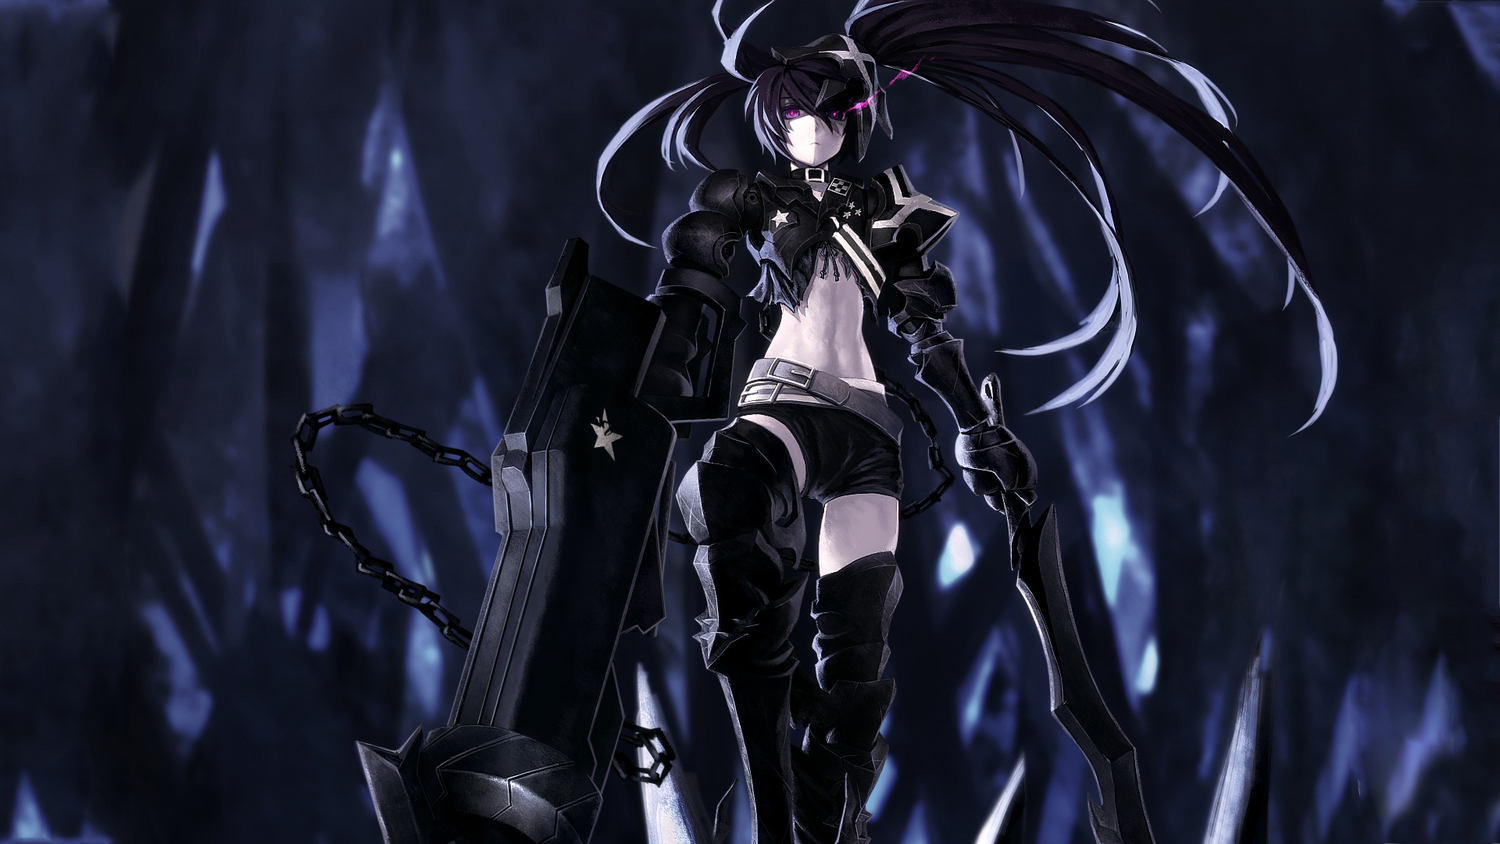 black_hair black_rock_shooter gun insane_black_rock_shooter kuroi_mato long_hair shorts sword weapon